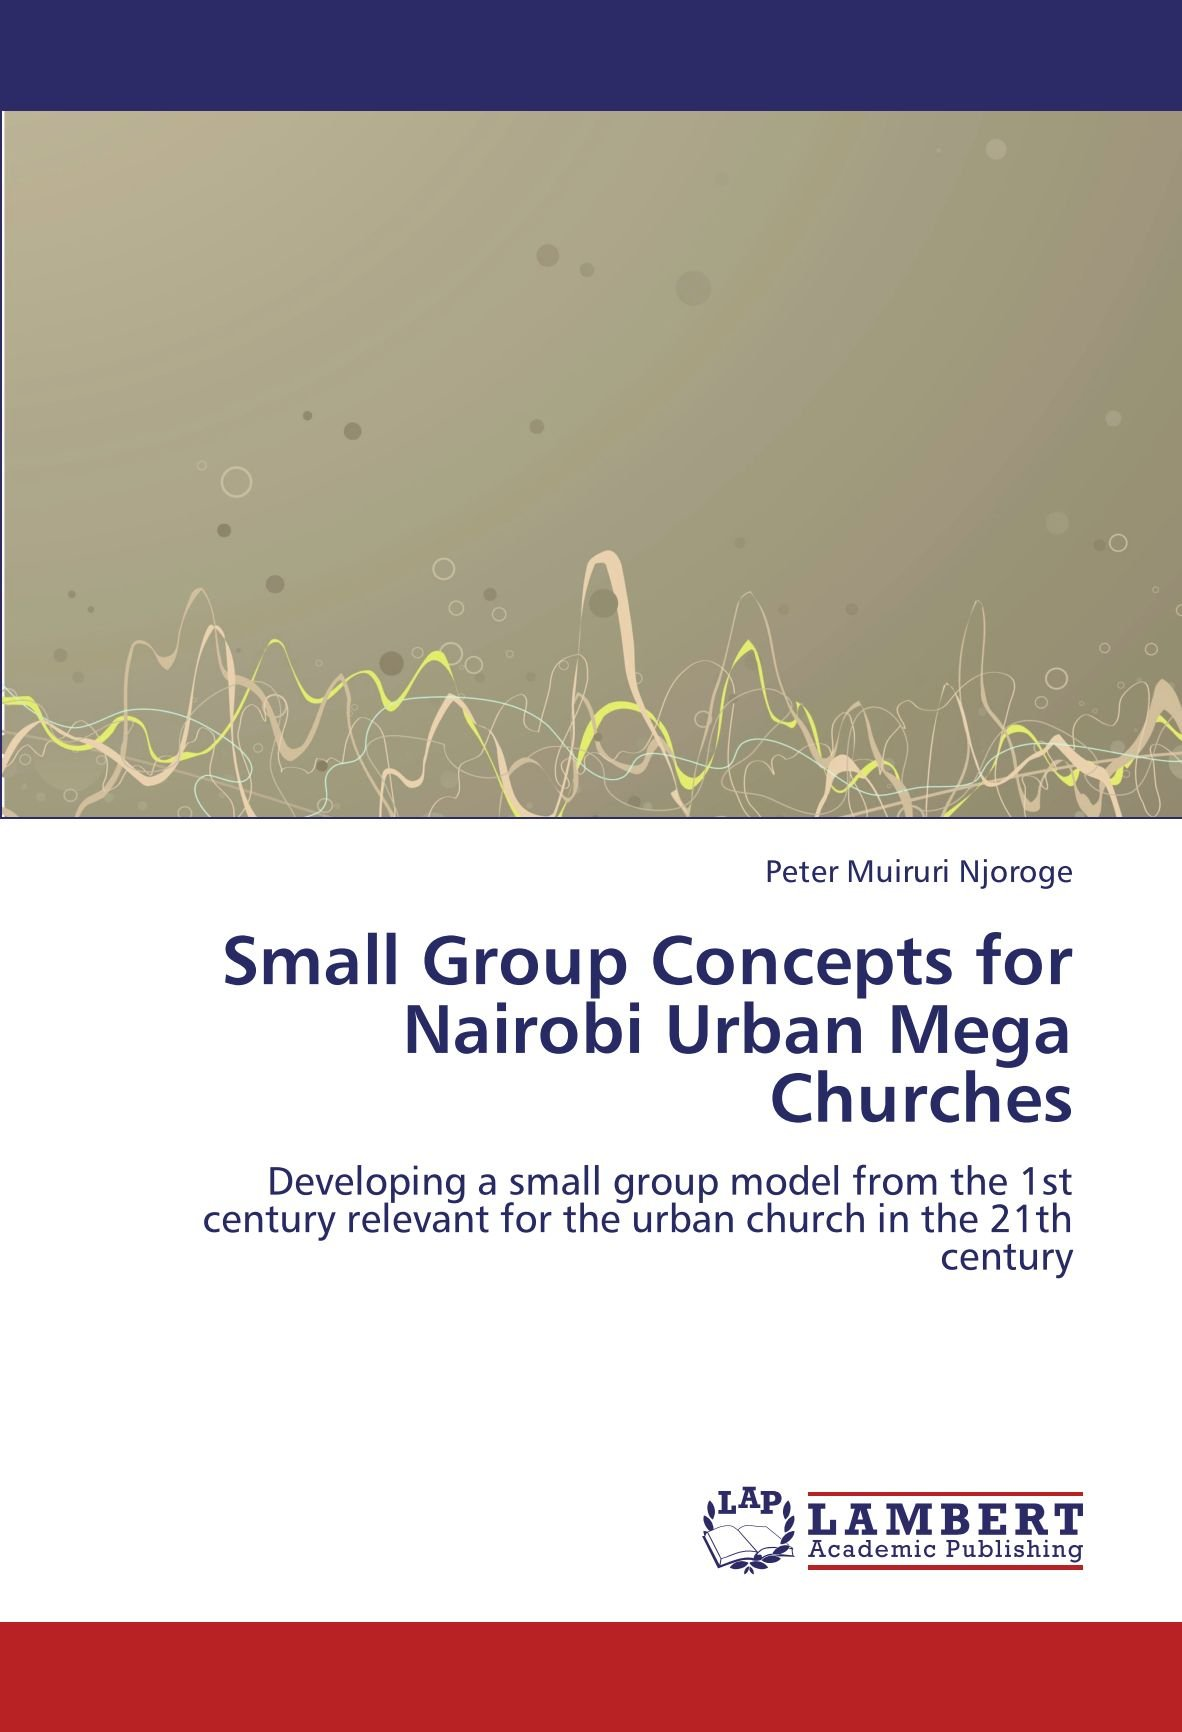 Small Group Concepts for Nairobi Urban Mega Churches: Developing a small group model from the 1st century relevant for the urban church in the 21th century PDF